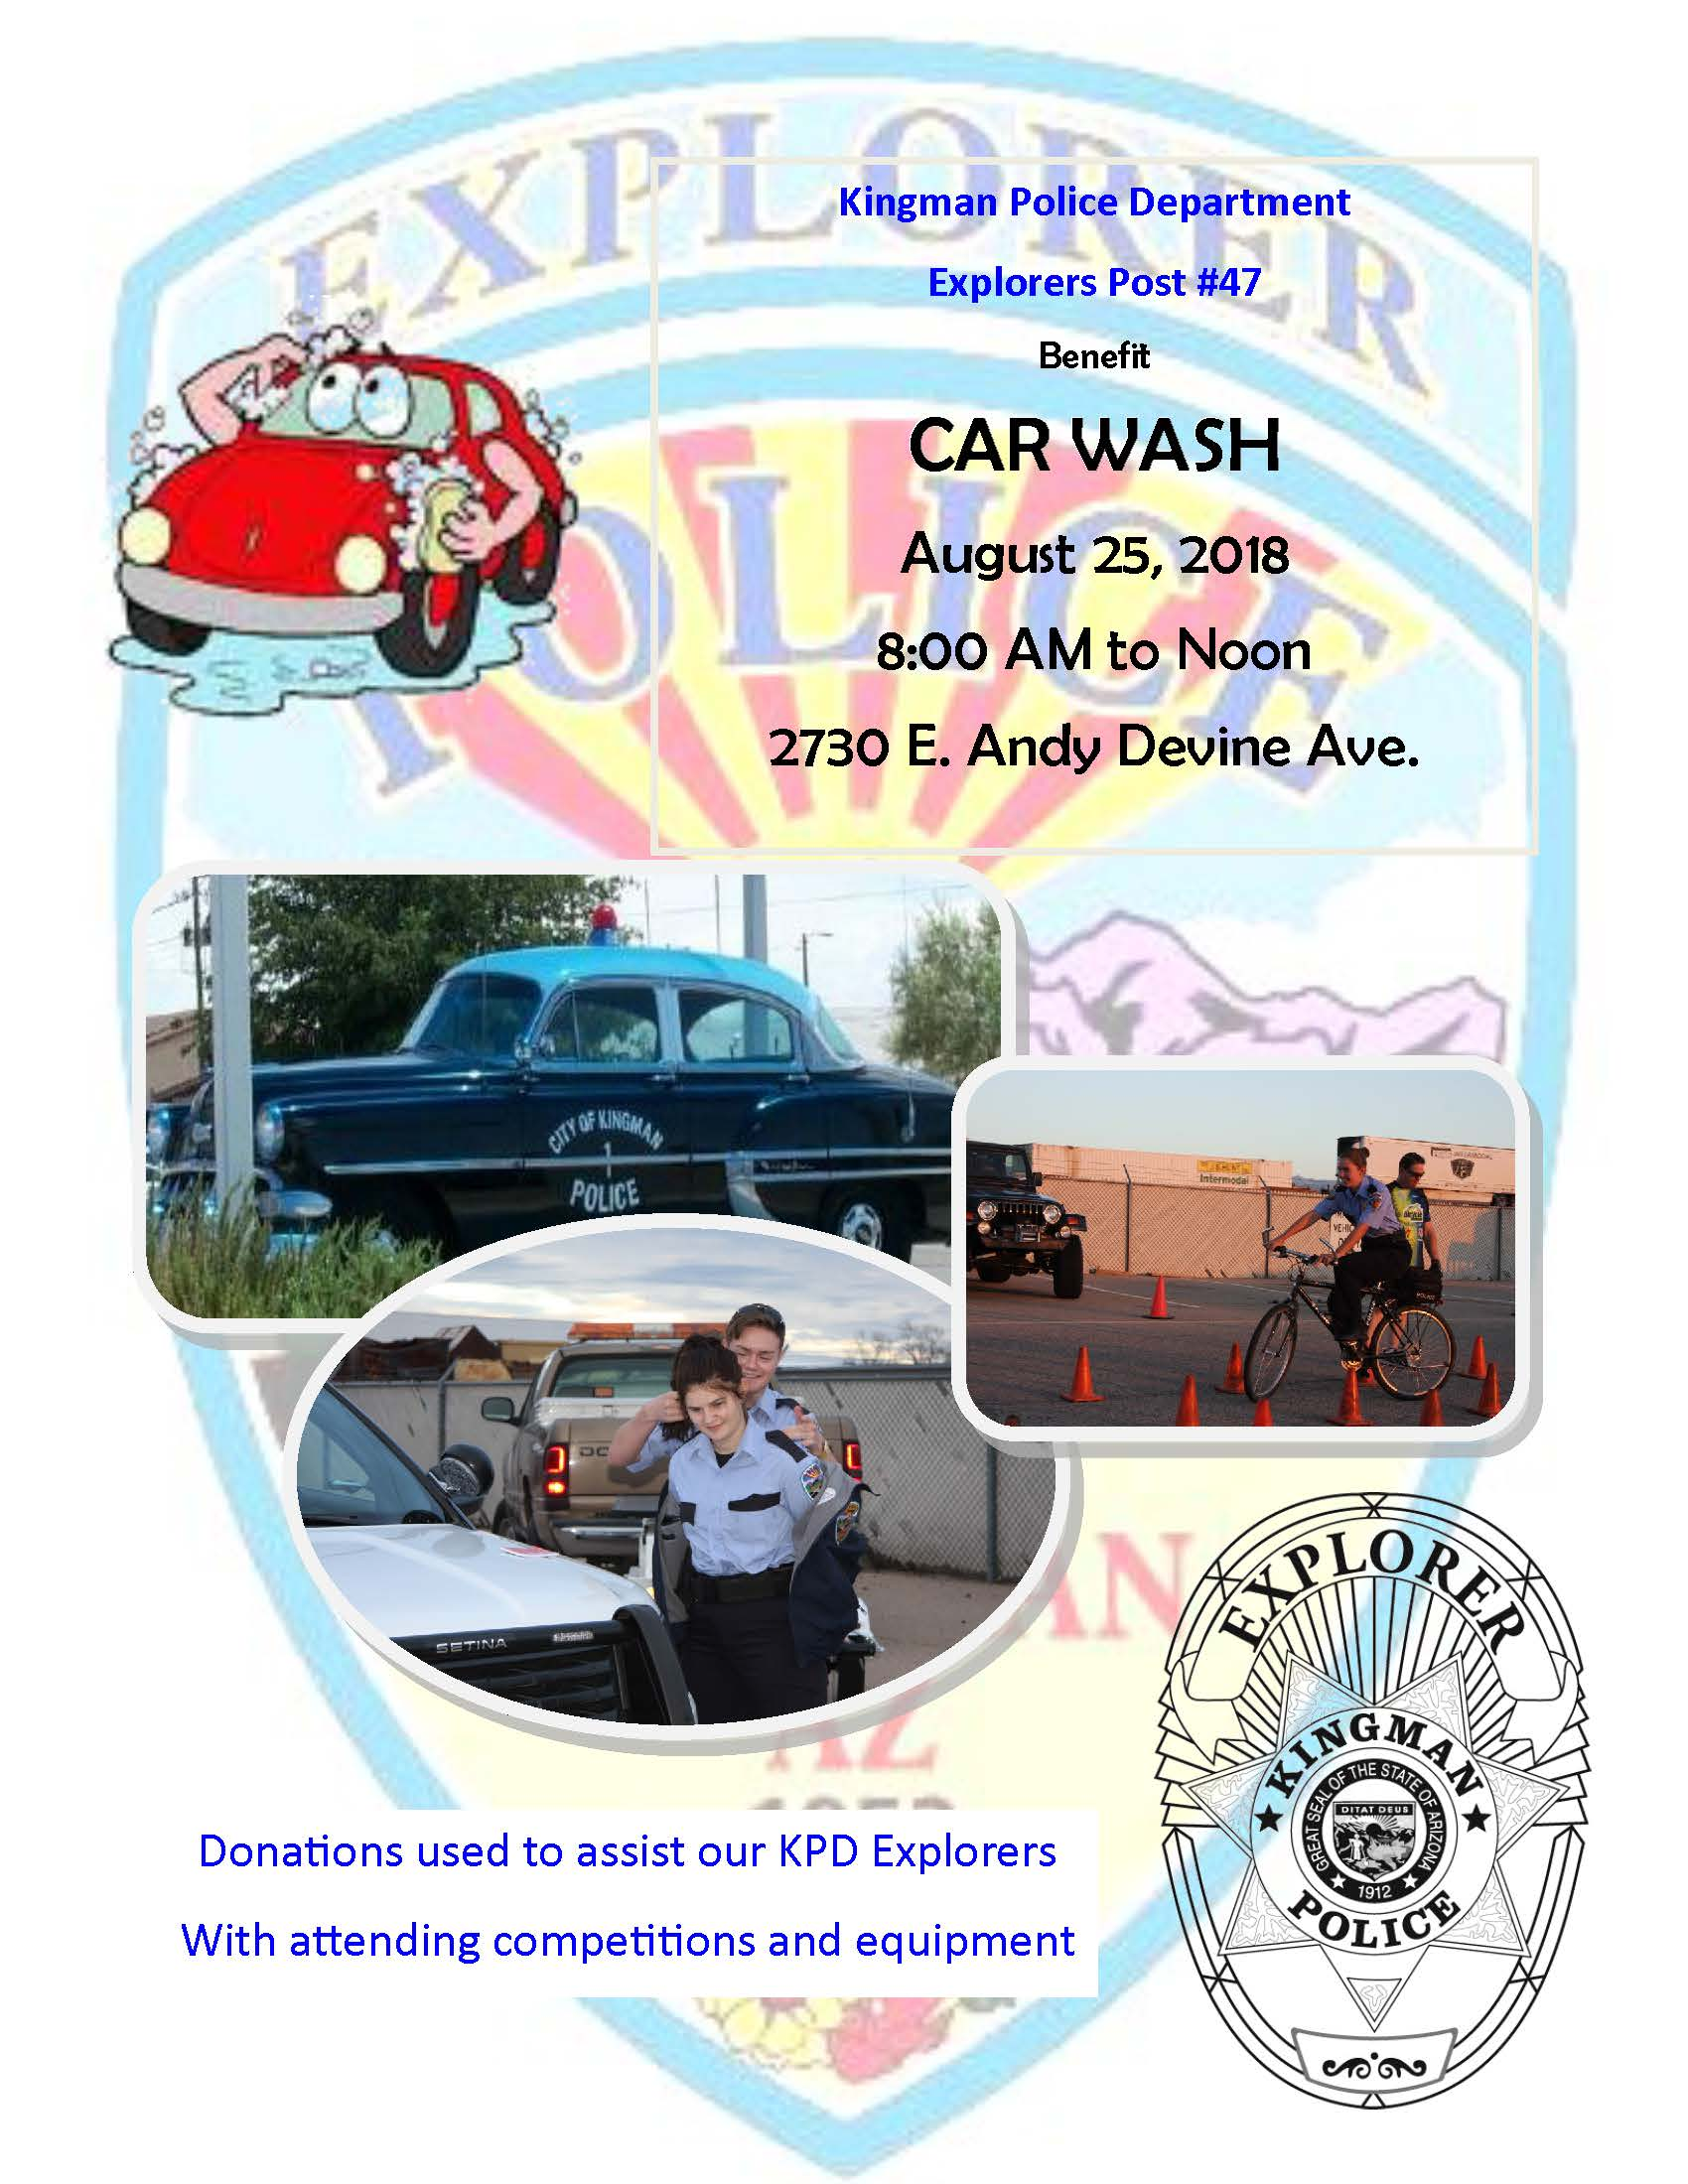 Benefit Car Wash, August 25, 2018, 8 am to noon at 2730 East Andy Devine Avenue